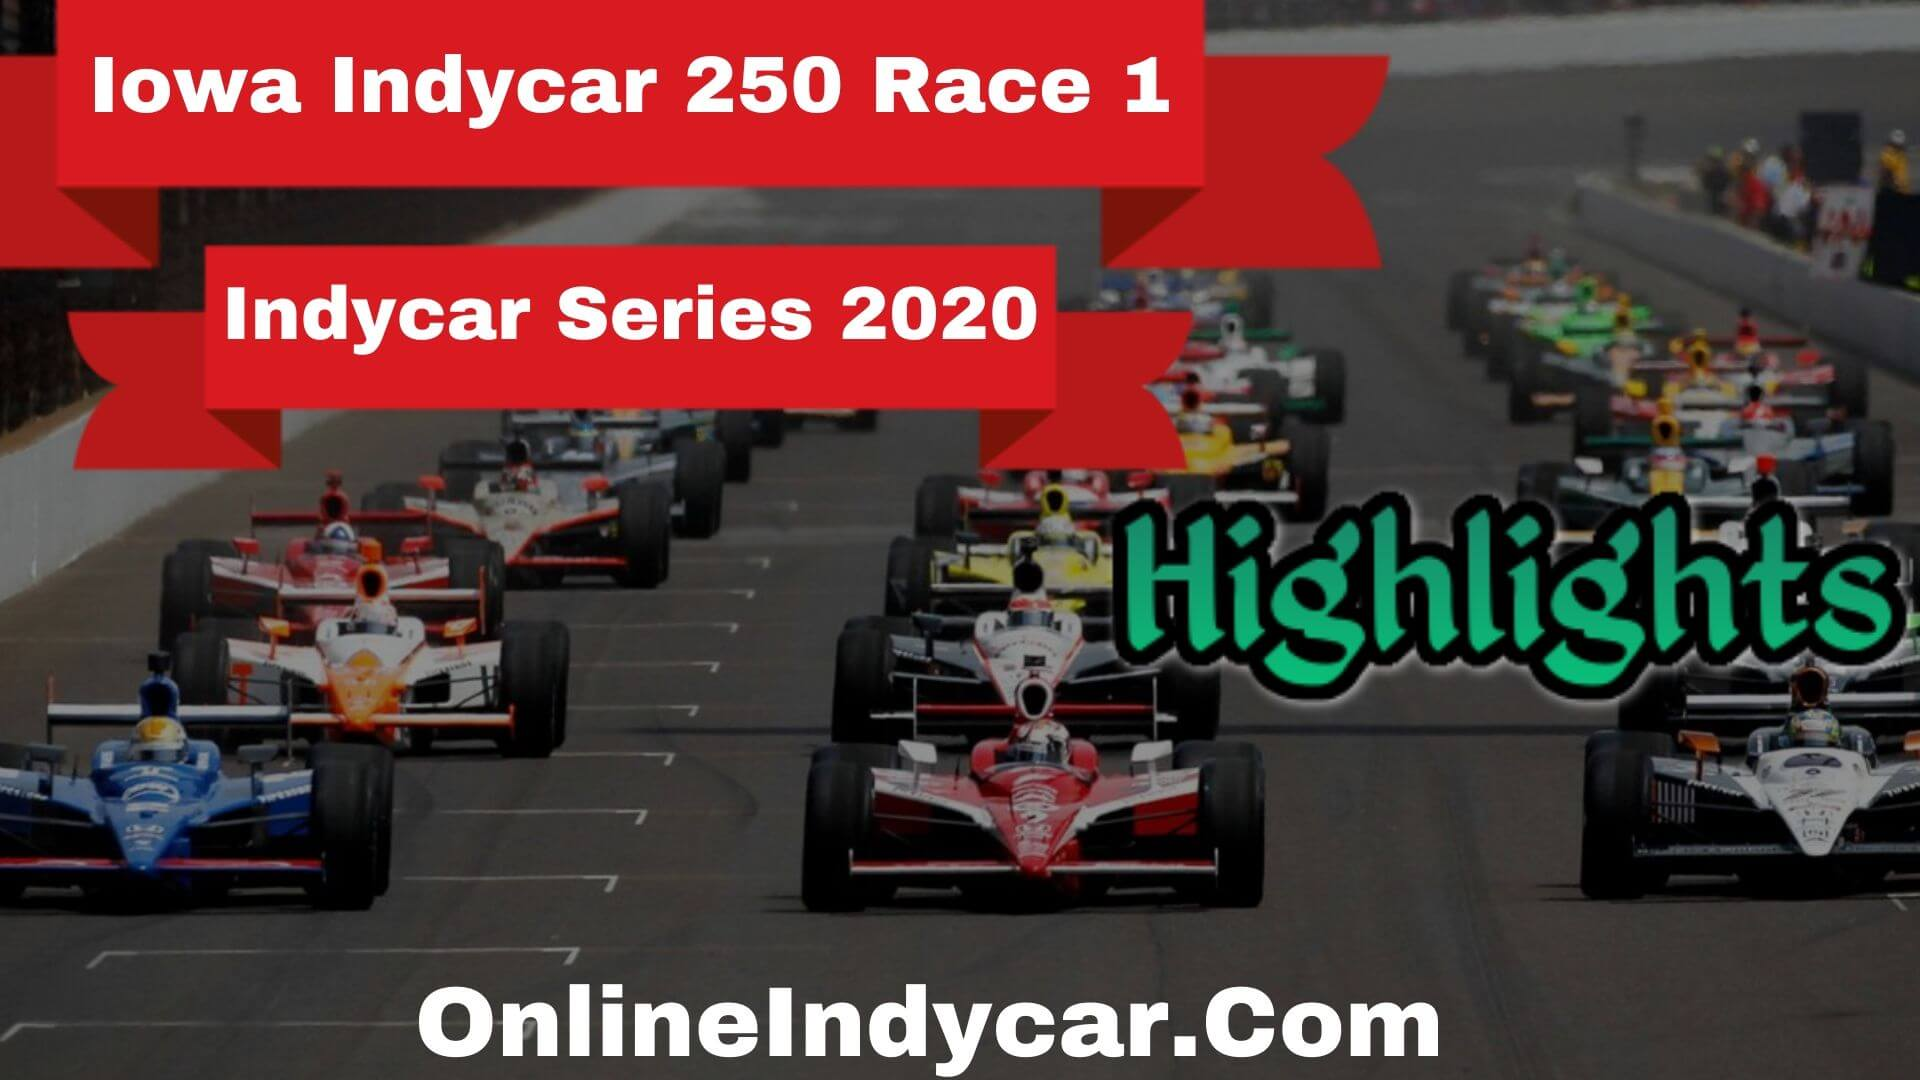 Iowa Indycar 250 Race 1 Indycar Highlights 2020